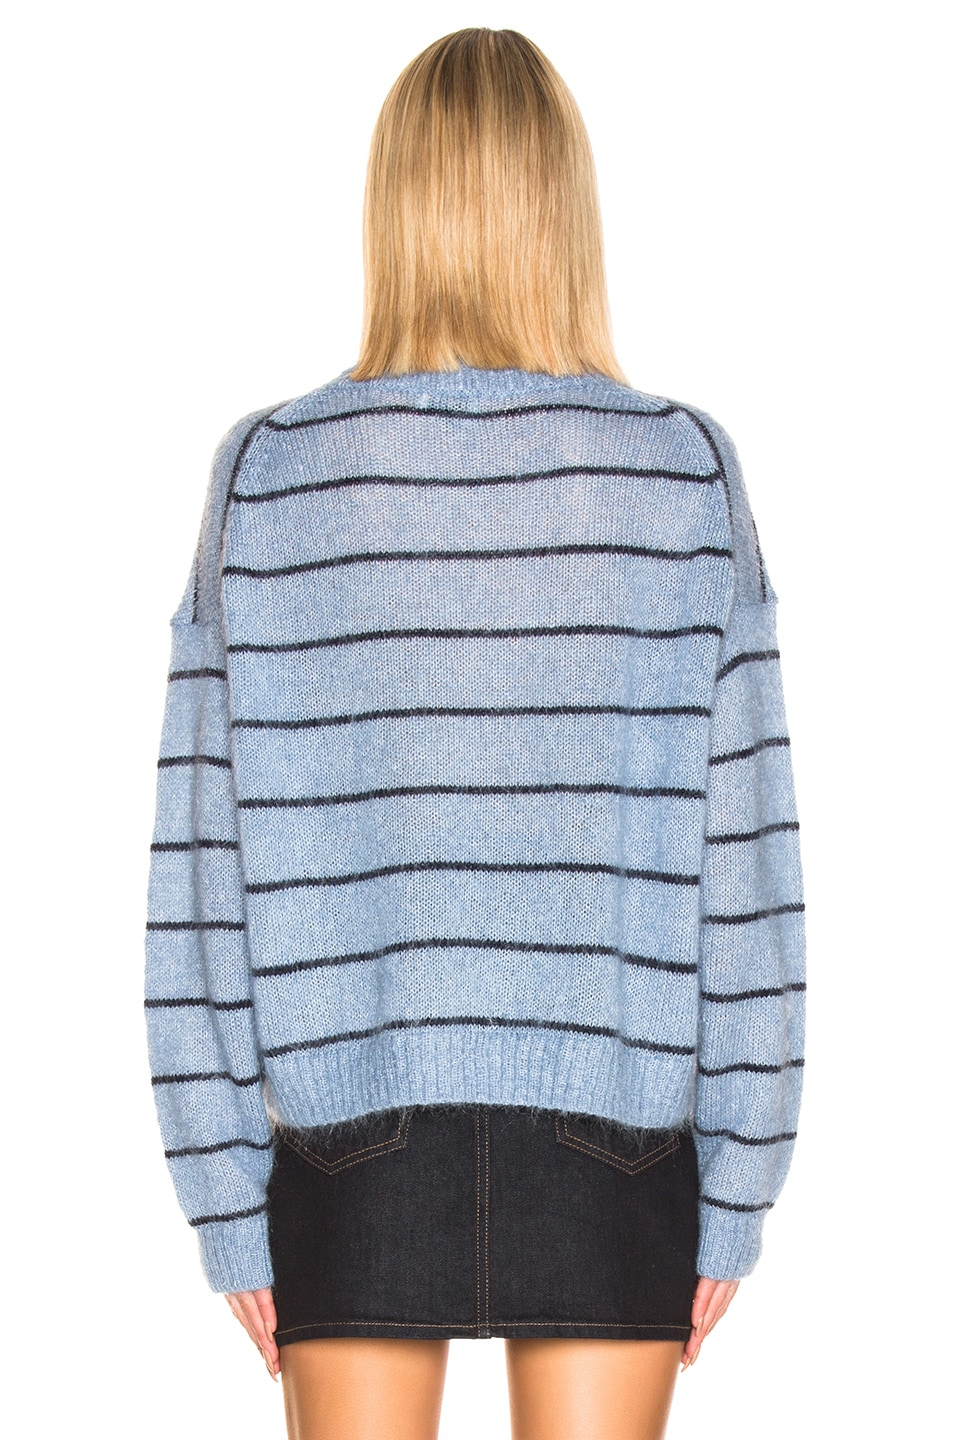 Image 3 of Acne Studios Kassidy Sweater in Denim Blue & Navy